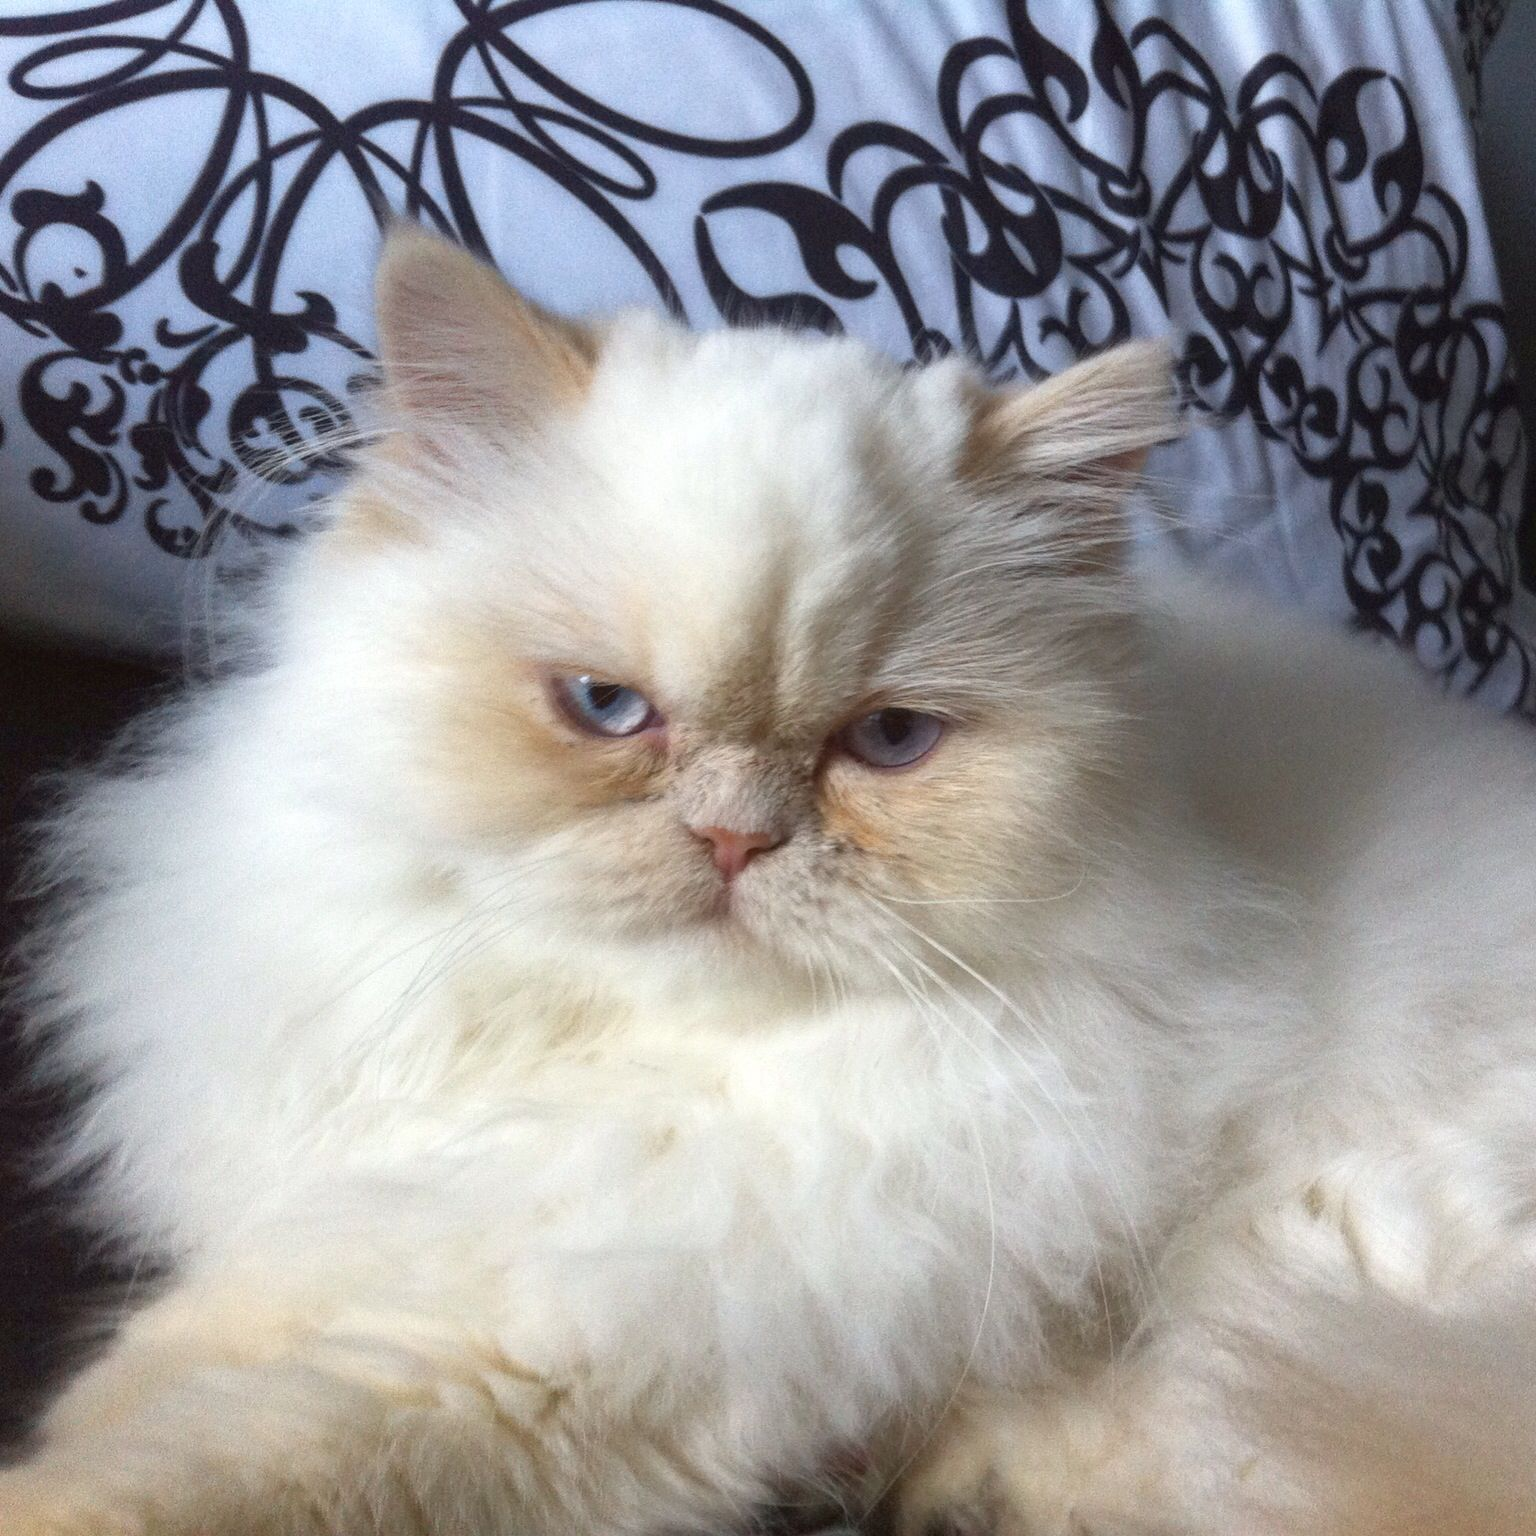 Cream point himalayan dollface , his name is Jack